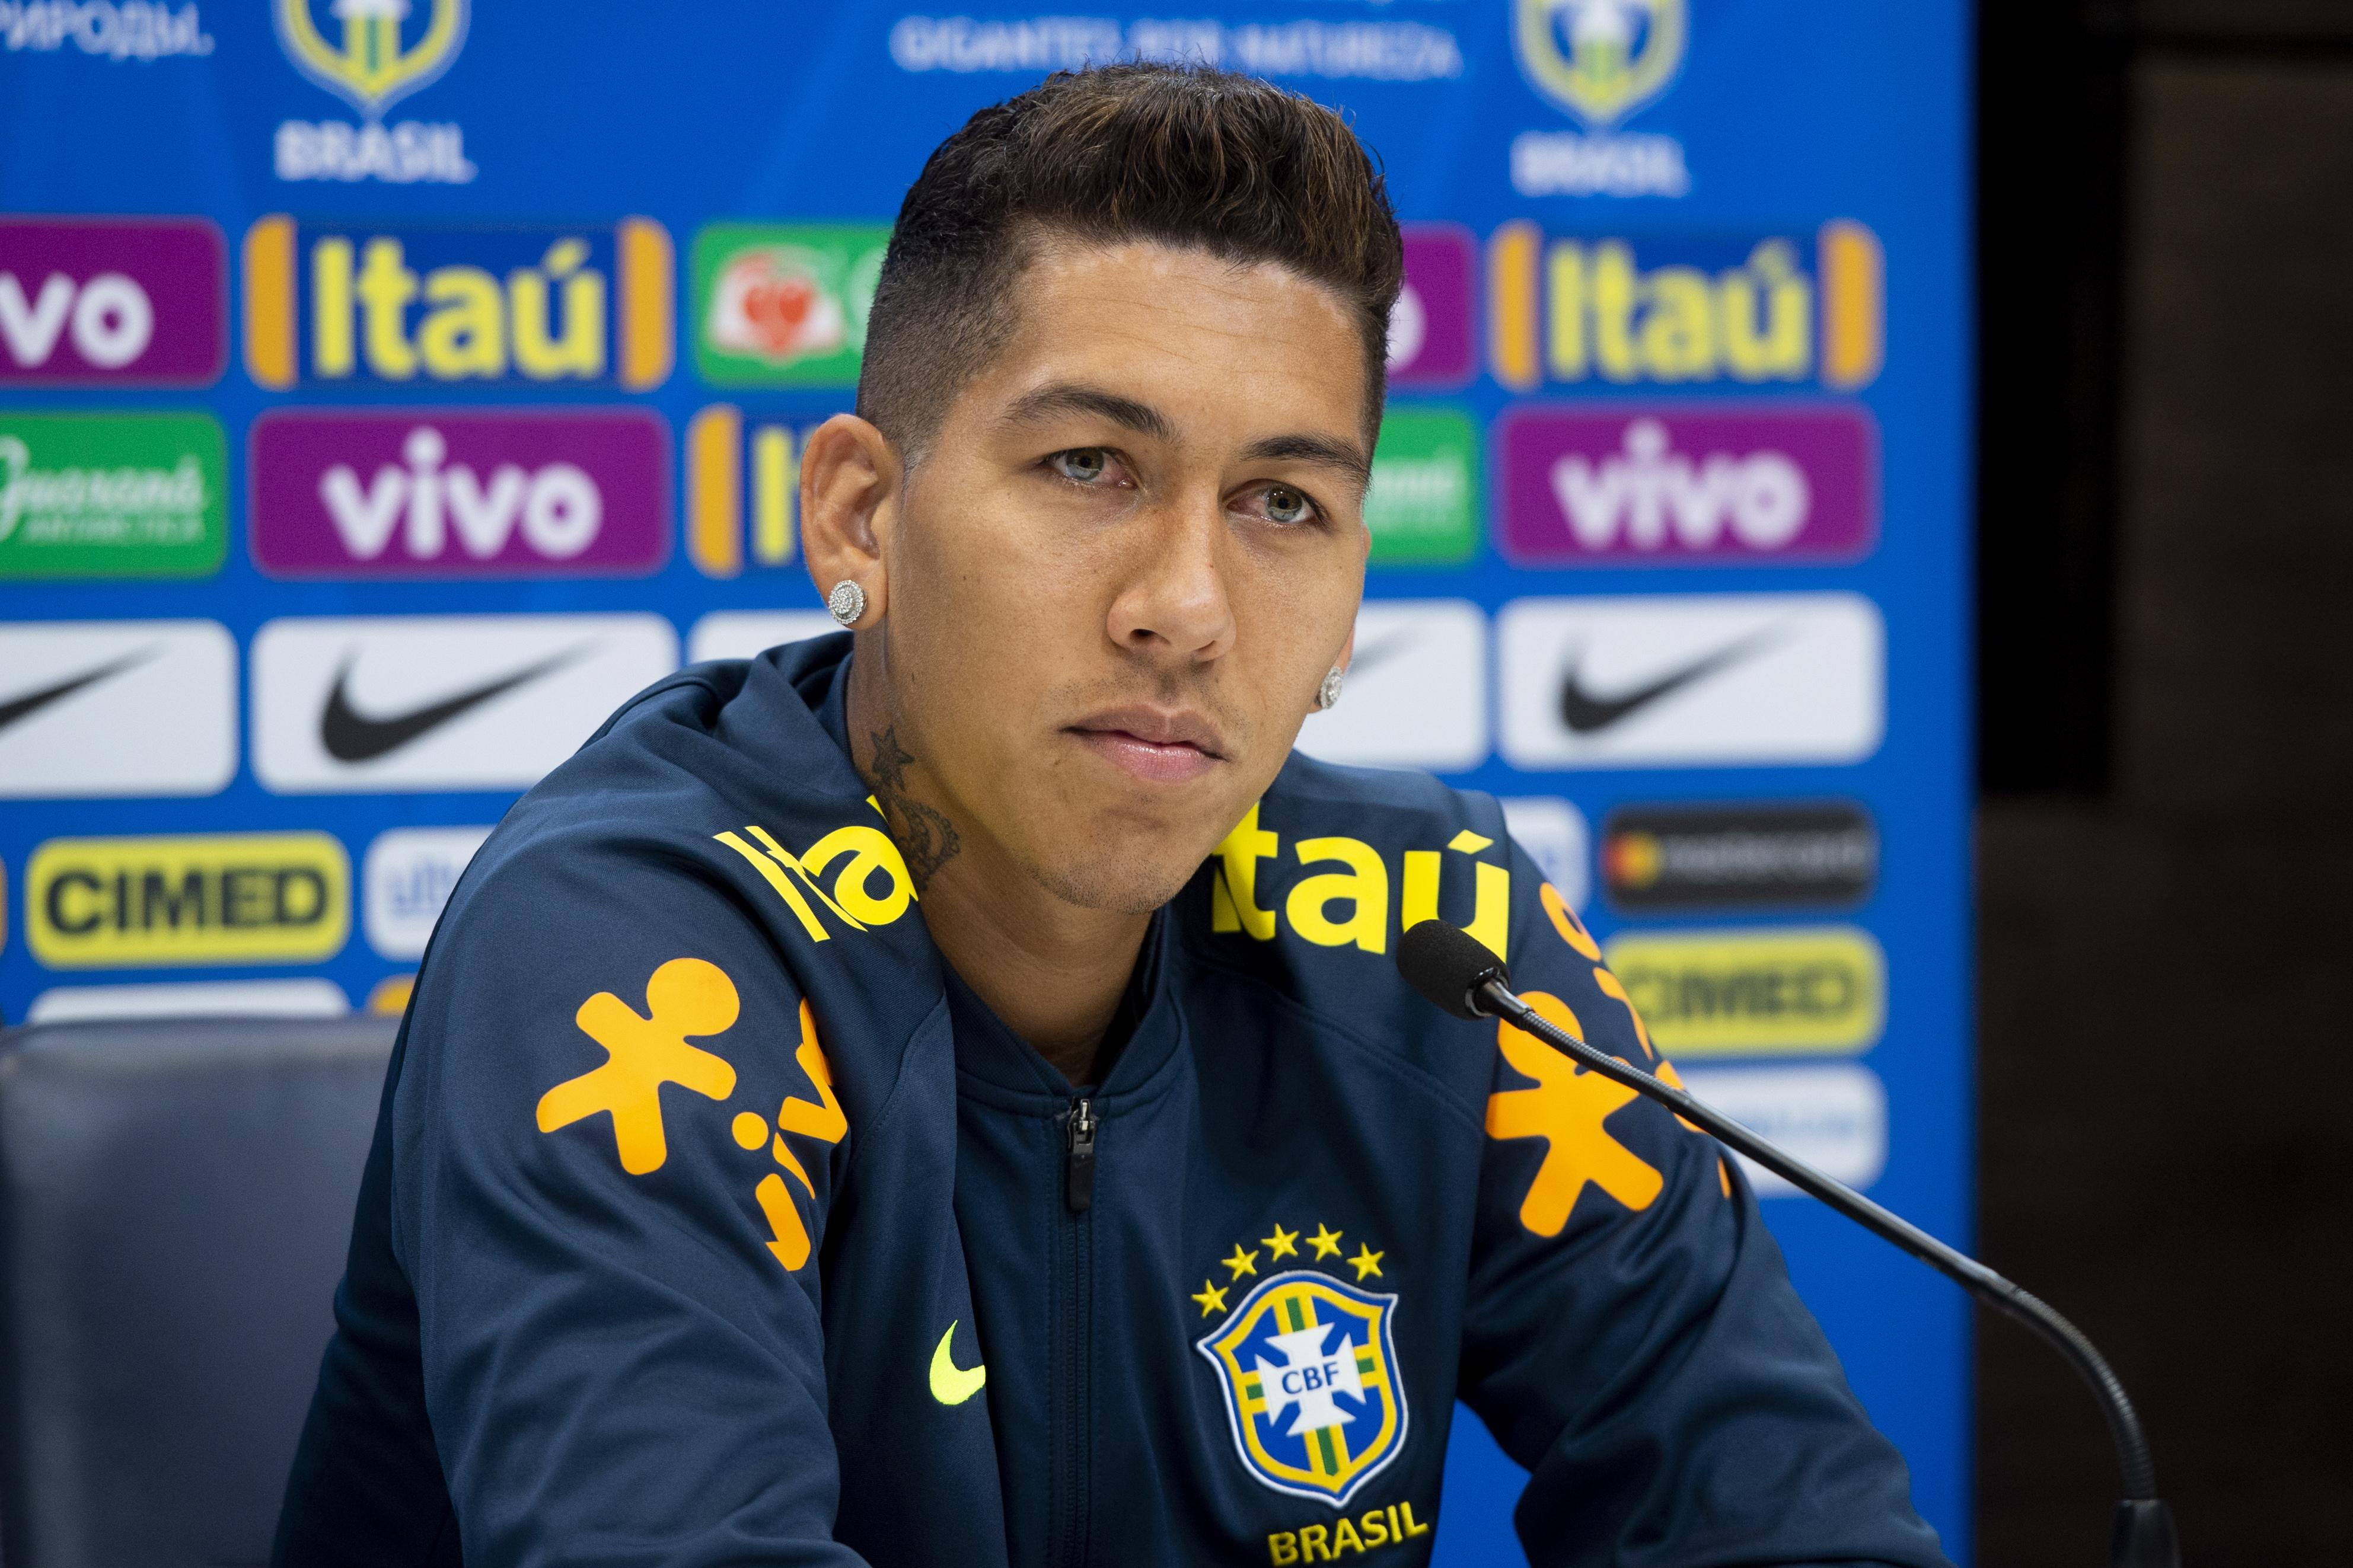 Roberto Firmino responded to Sergio Ramos' comments about the Champions League final